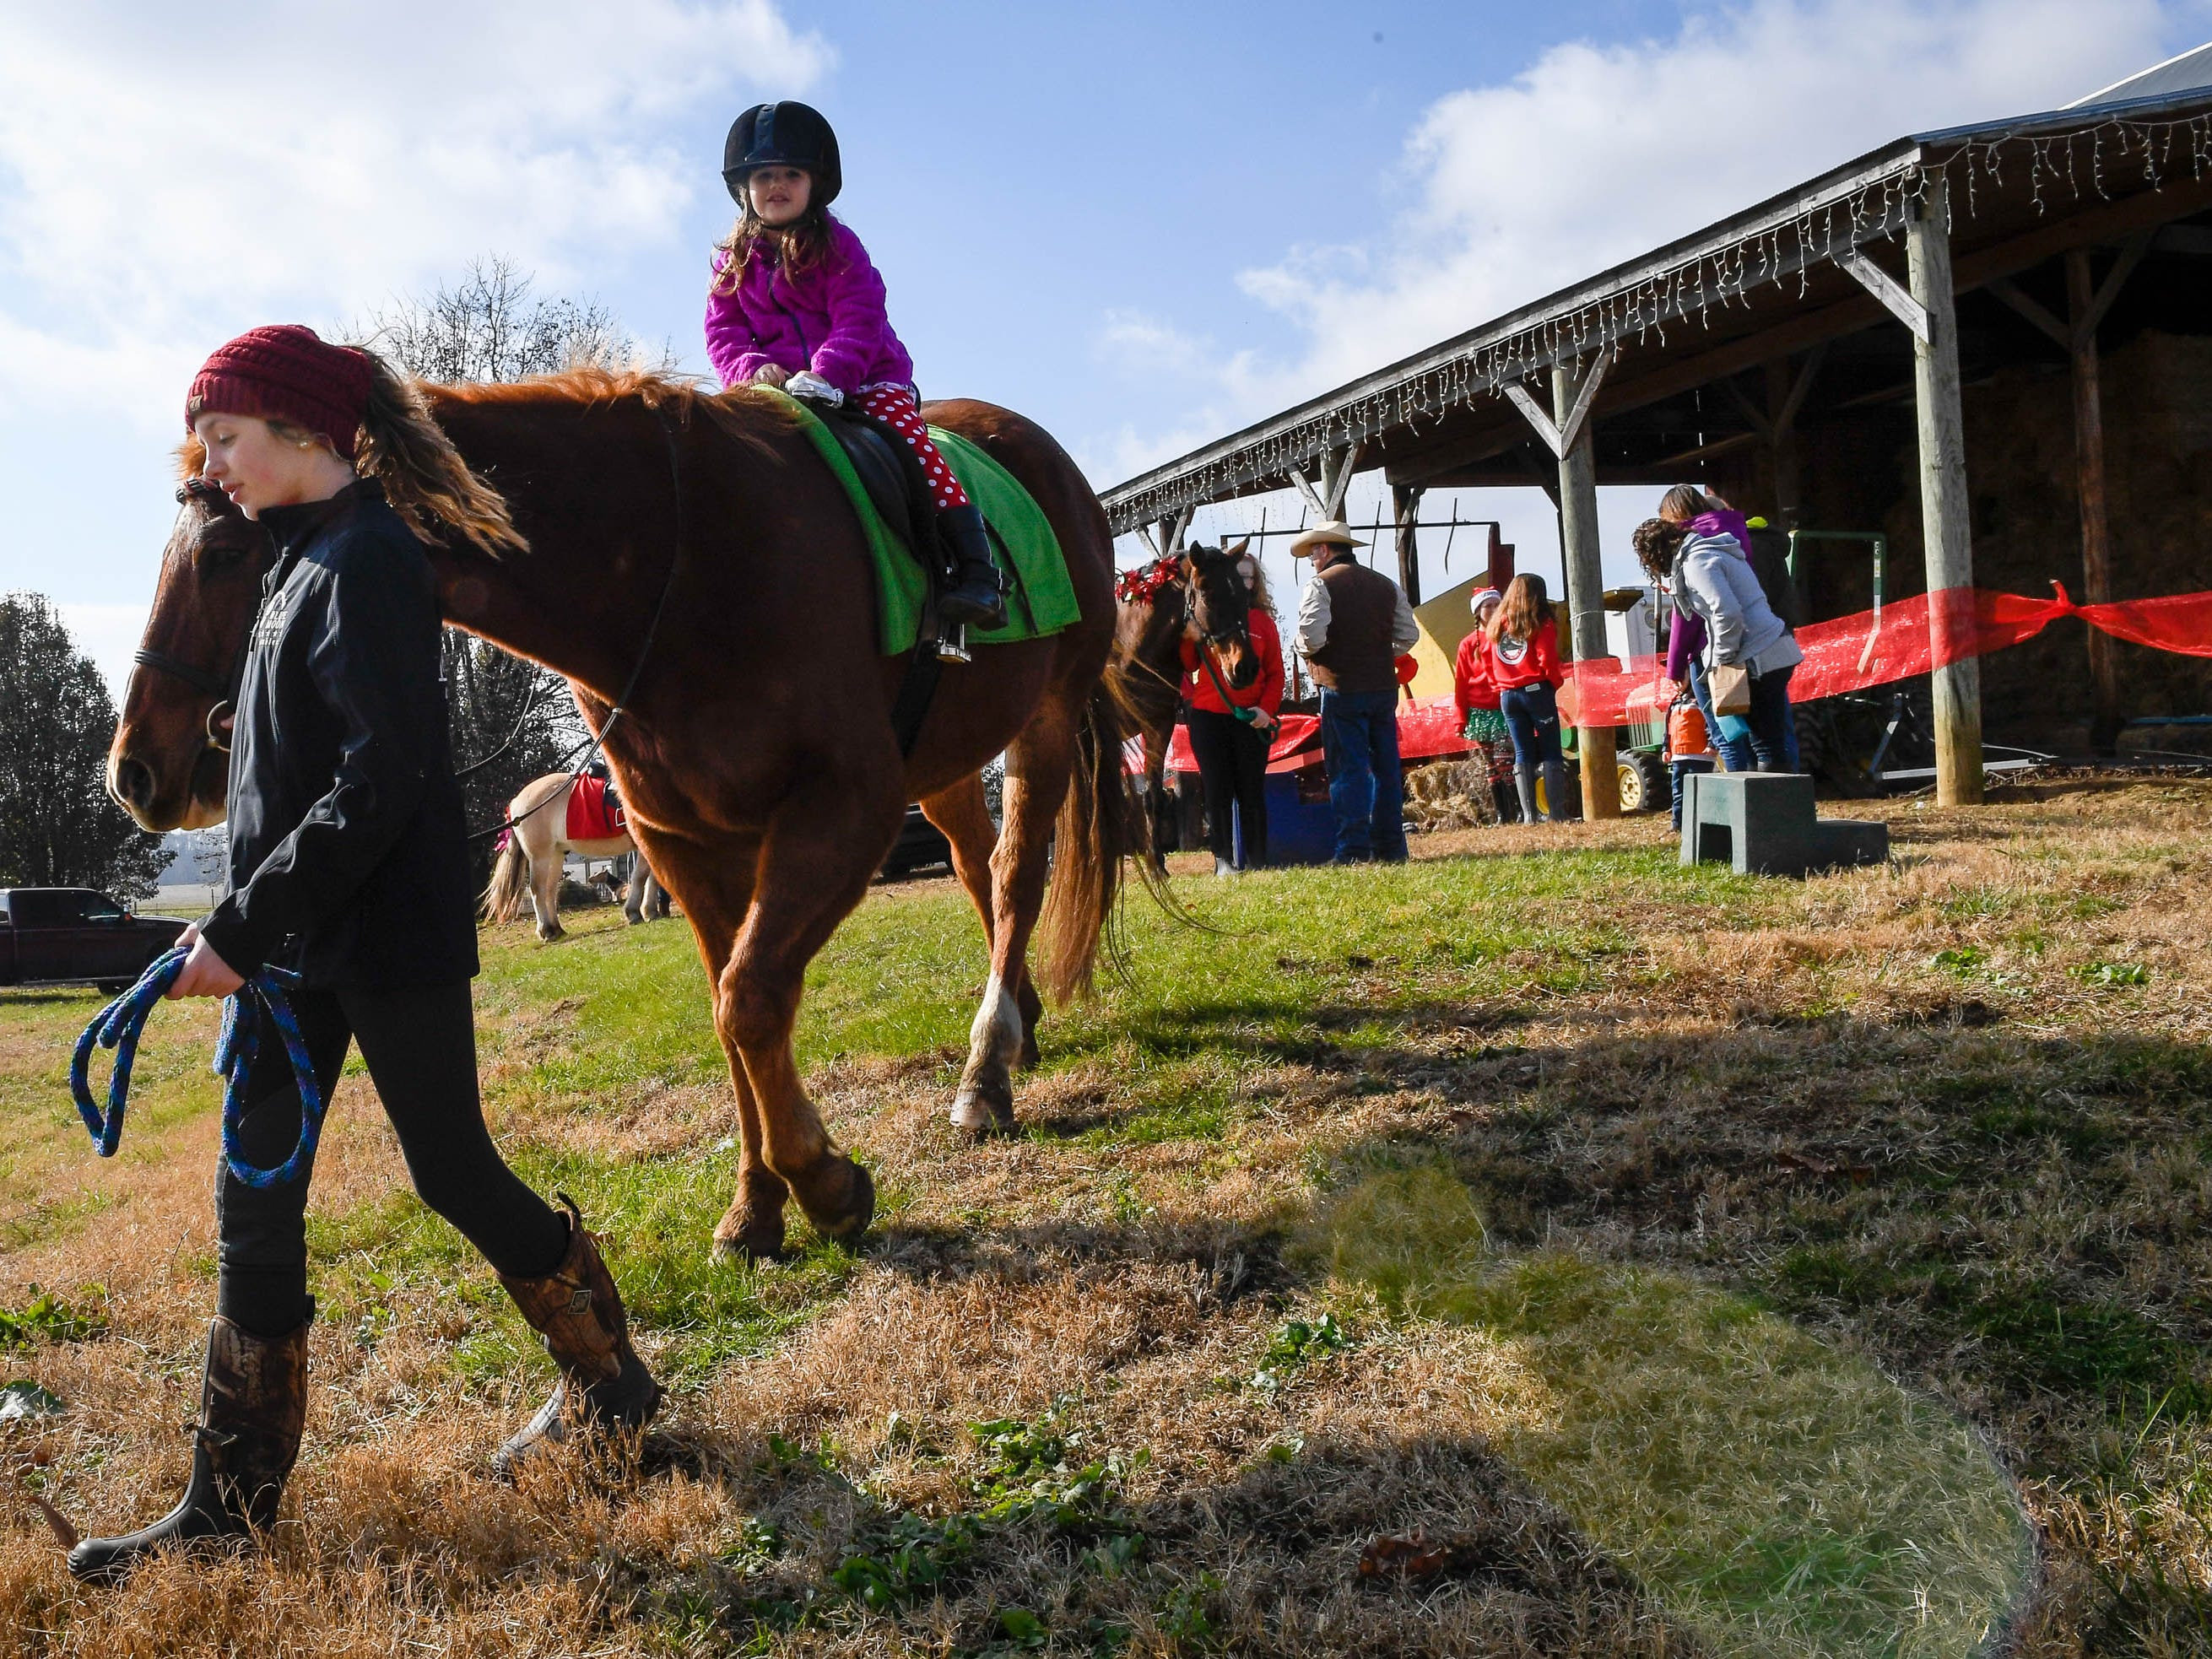 Lexie Clements leads Judge the horse as they take Jullian Pace, five years-old, for a ride at the Christmas on the farm fund raising event for the Healing Reins Therapeutic Riding program Saturday. The family friendly event features pony rides, hay rides, vendor mall and barbecue, November 24, 2018.